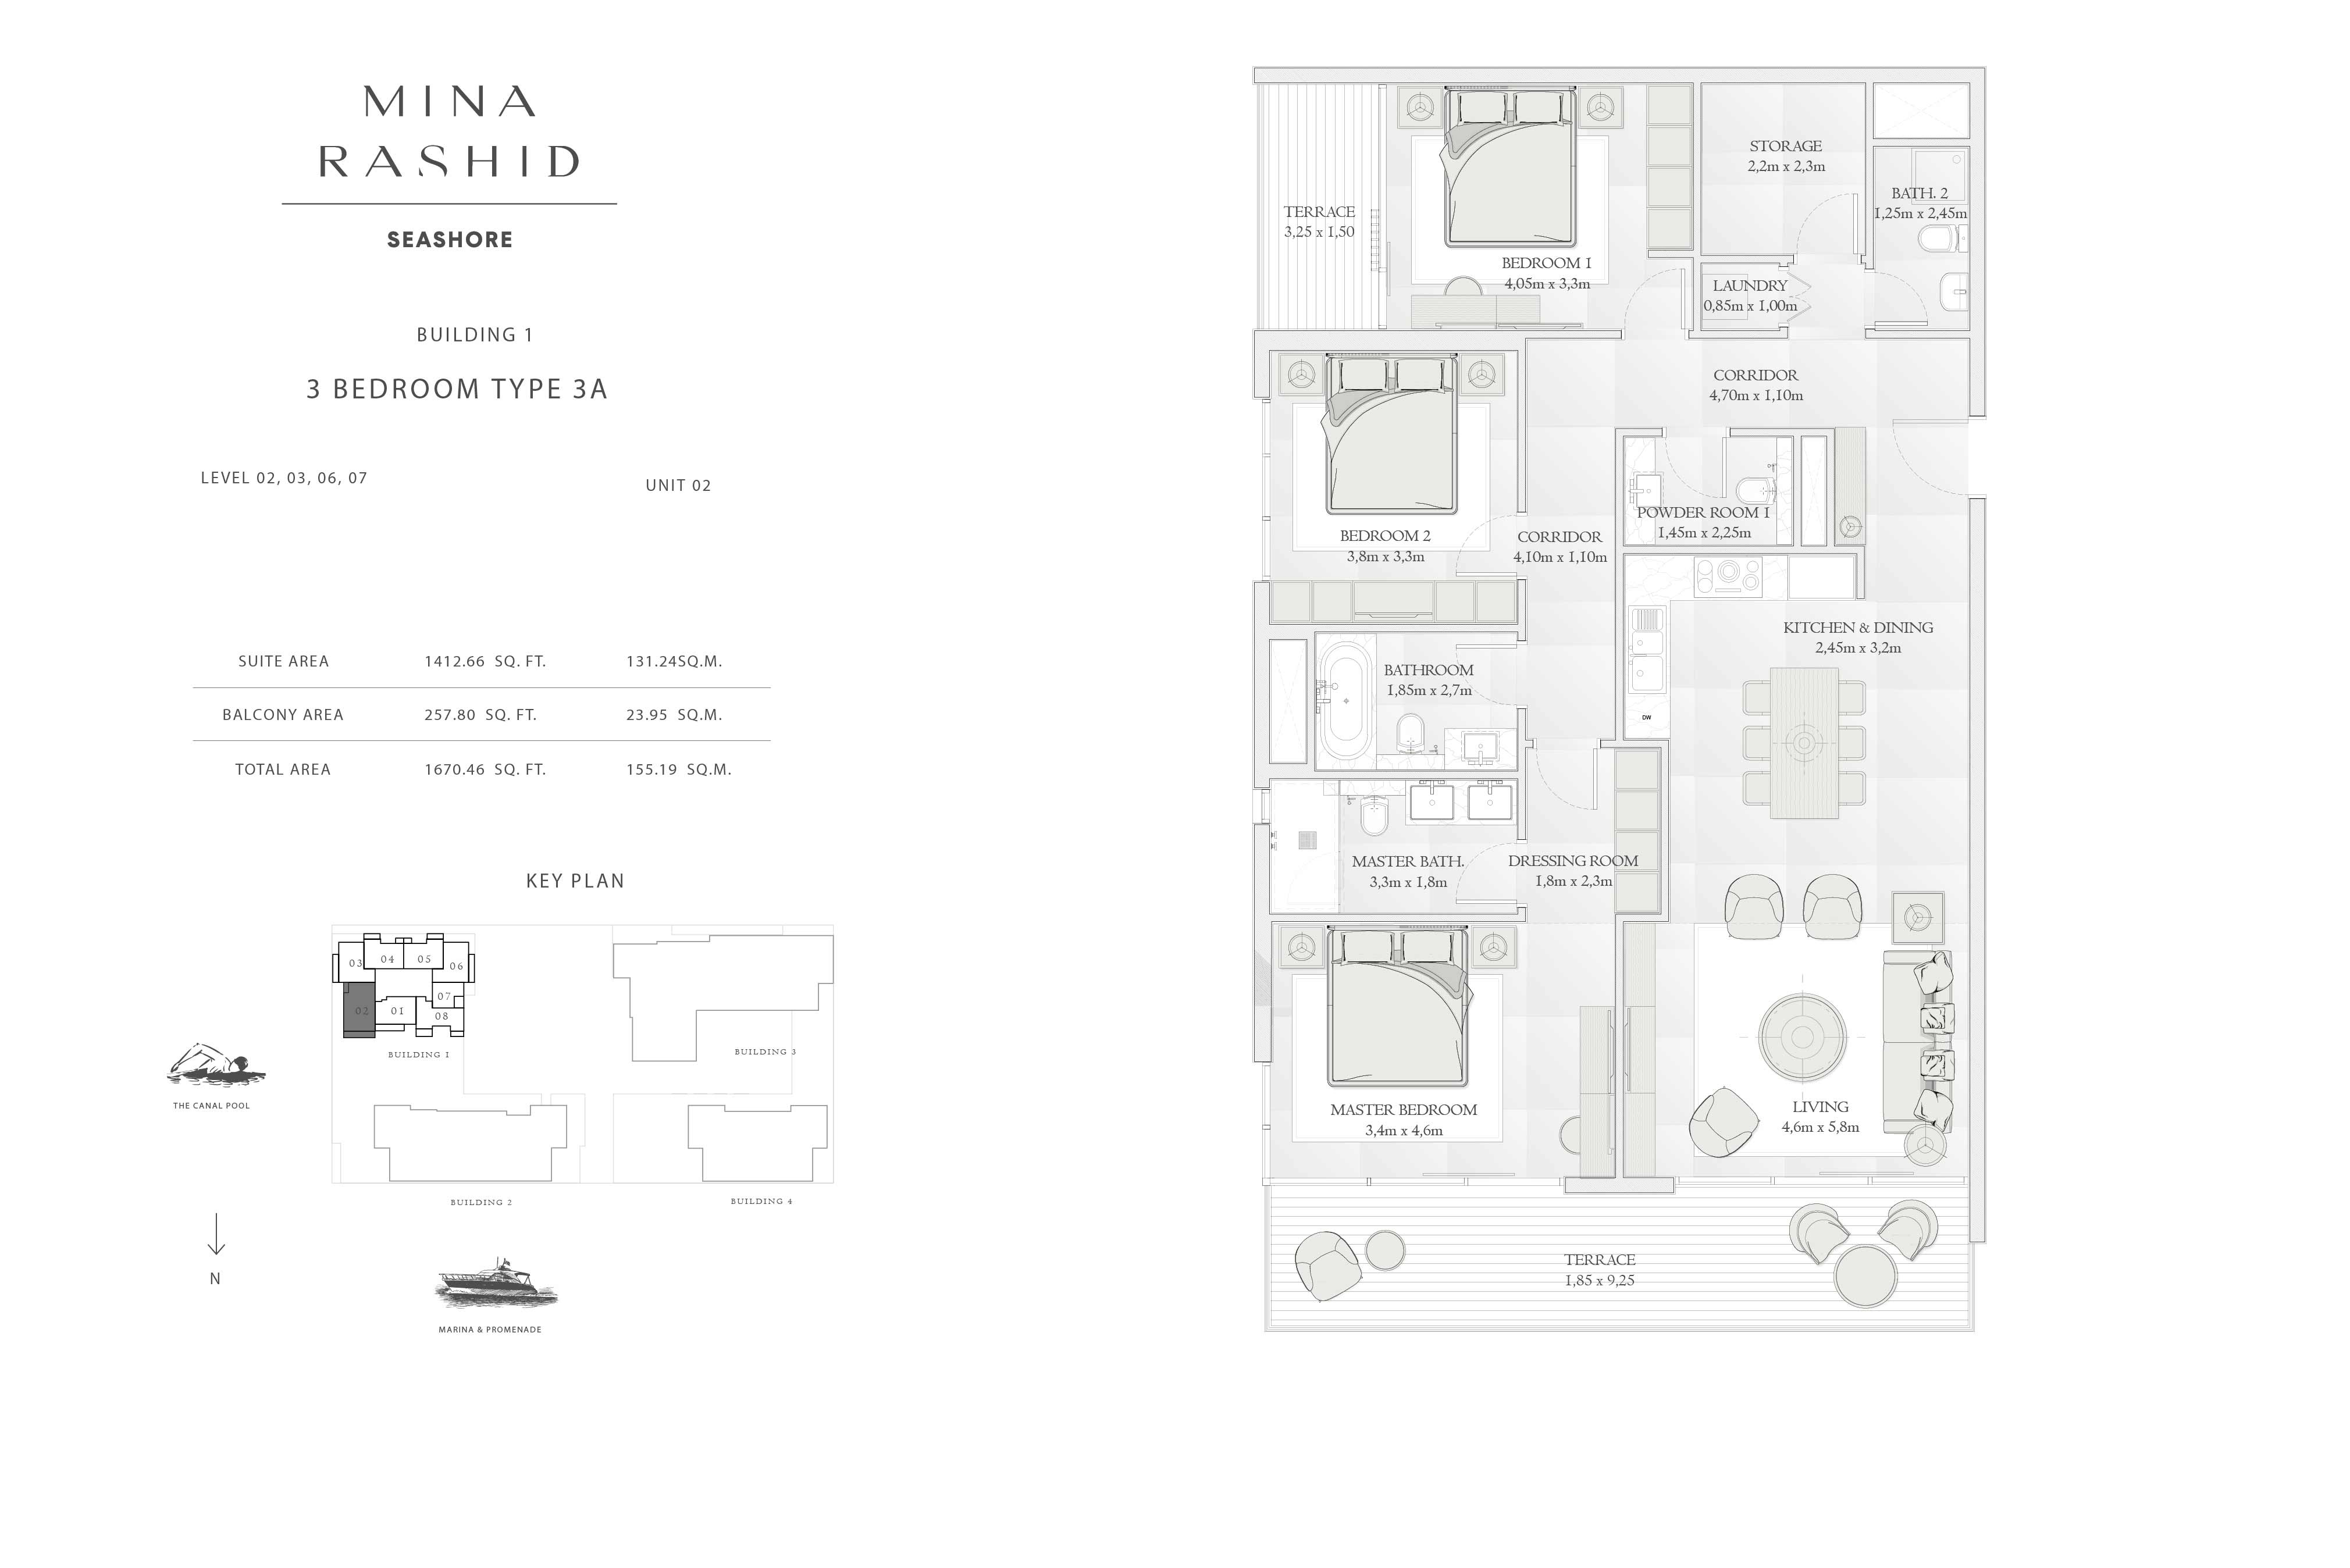 Building-1, 3-Bedroom Type-3A, Size-1670-Sq Ft